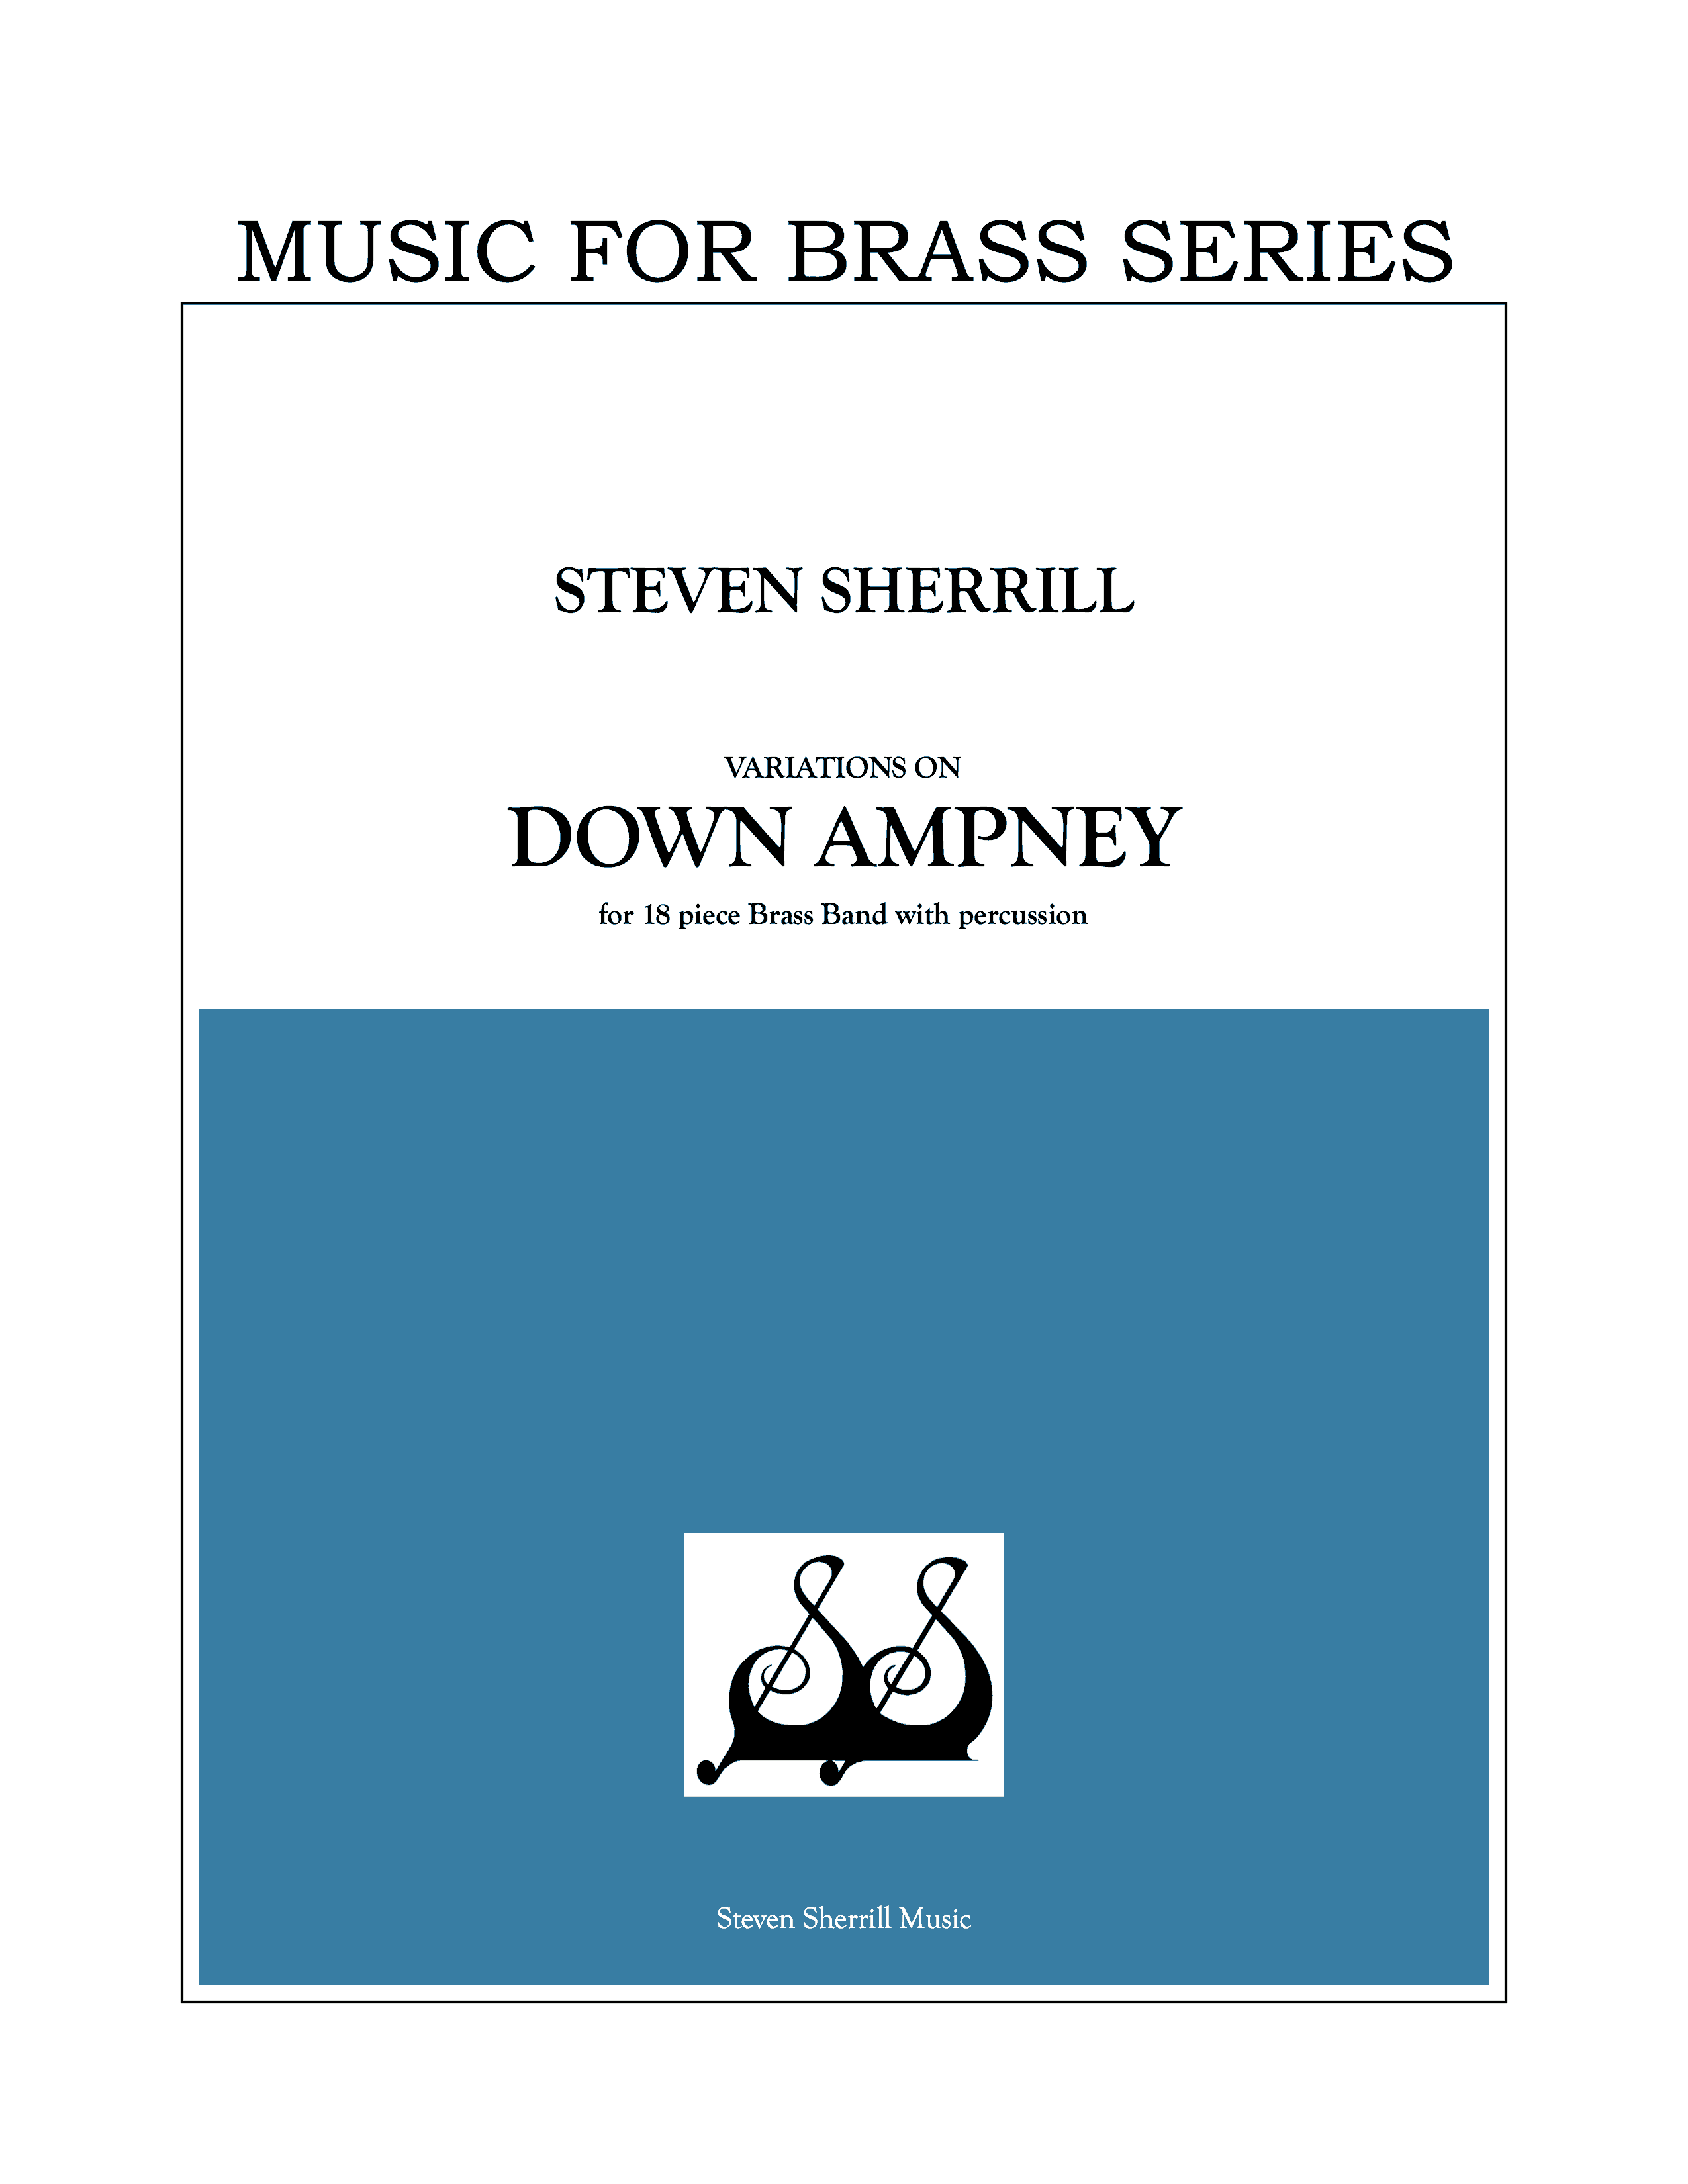 Variations on Down Ampney cover page